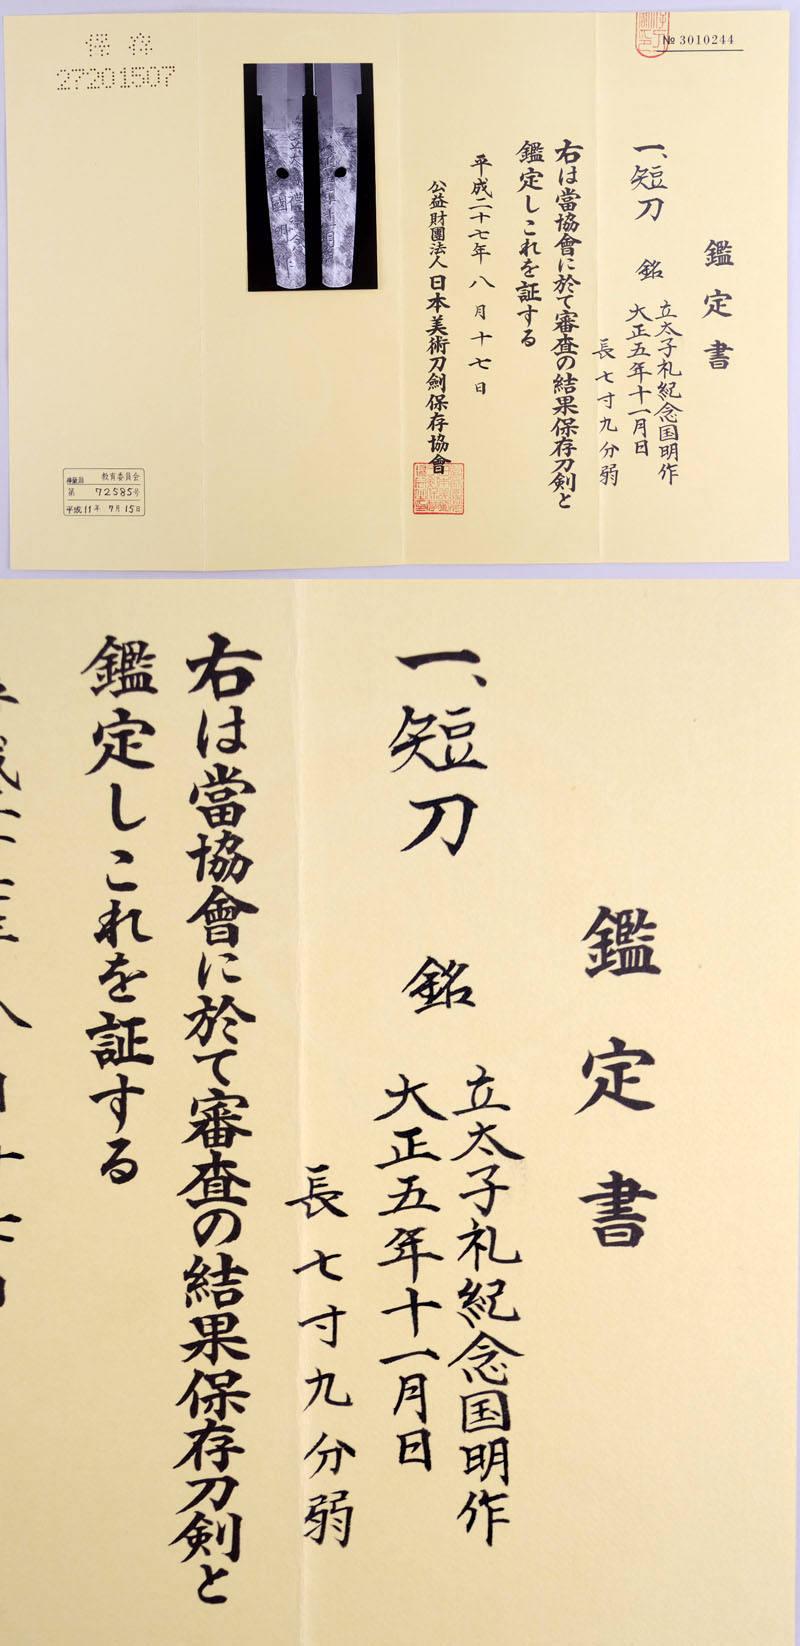 国明作 (沖本国明) Picture of Certificate